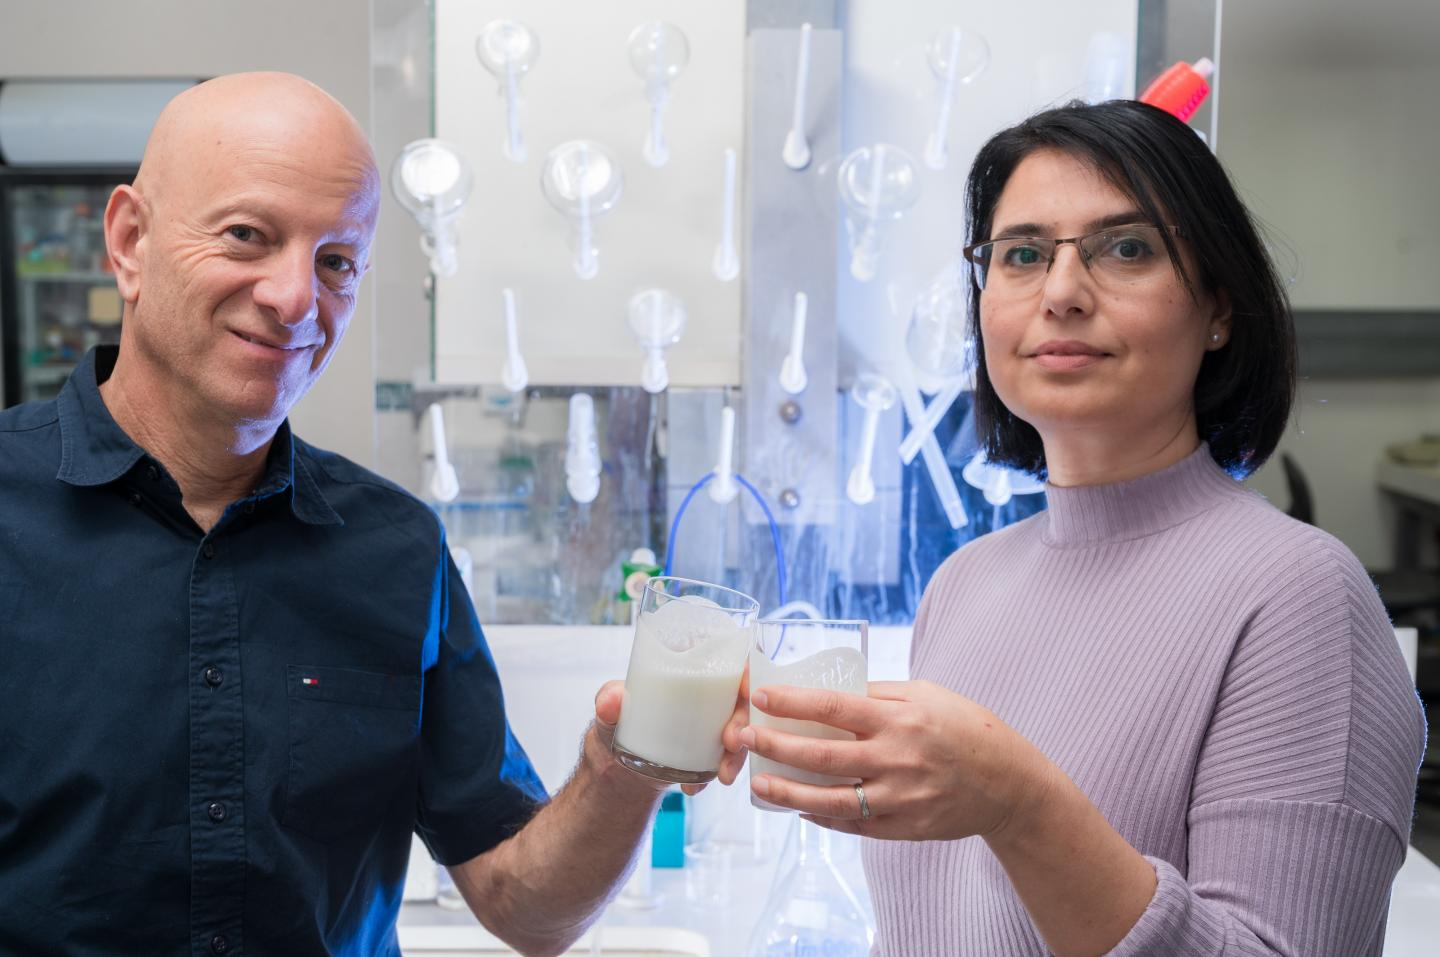 Ben-Gurion University Researchers Developing New Probiotic Yogurt-Based Drugs for Inflammatory Conditions and Bacteria